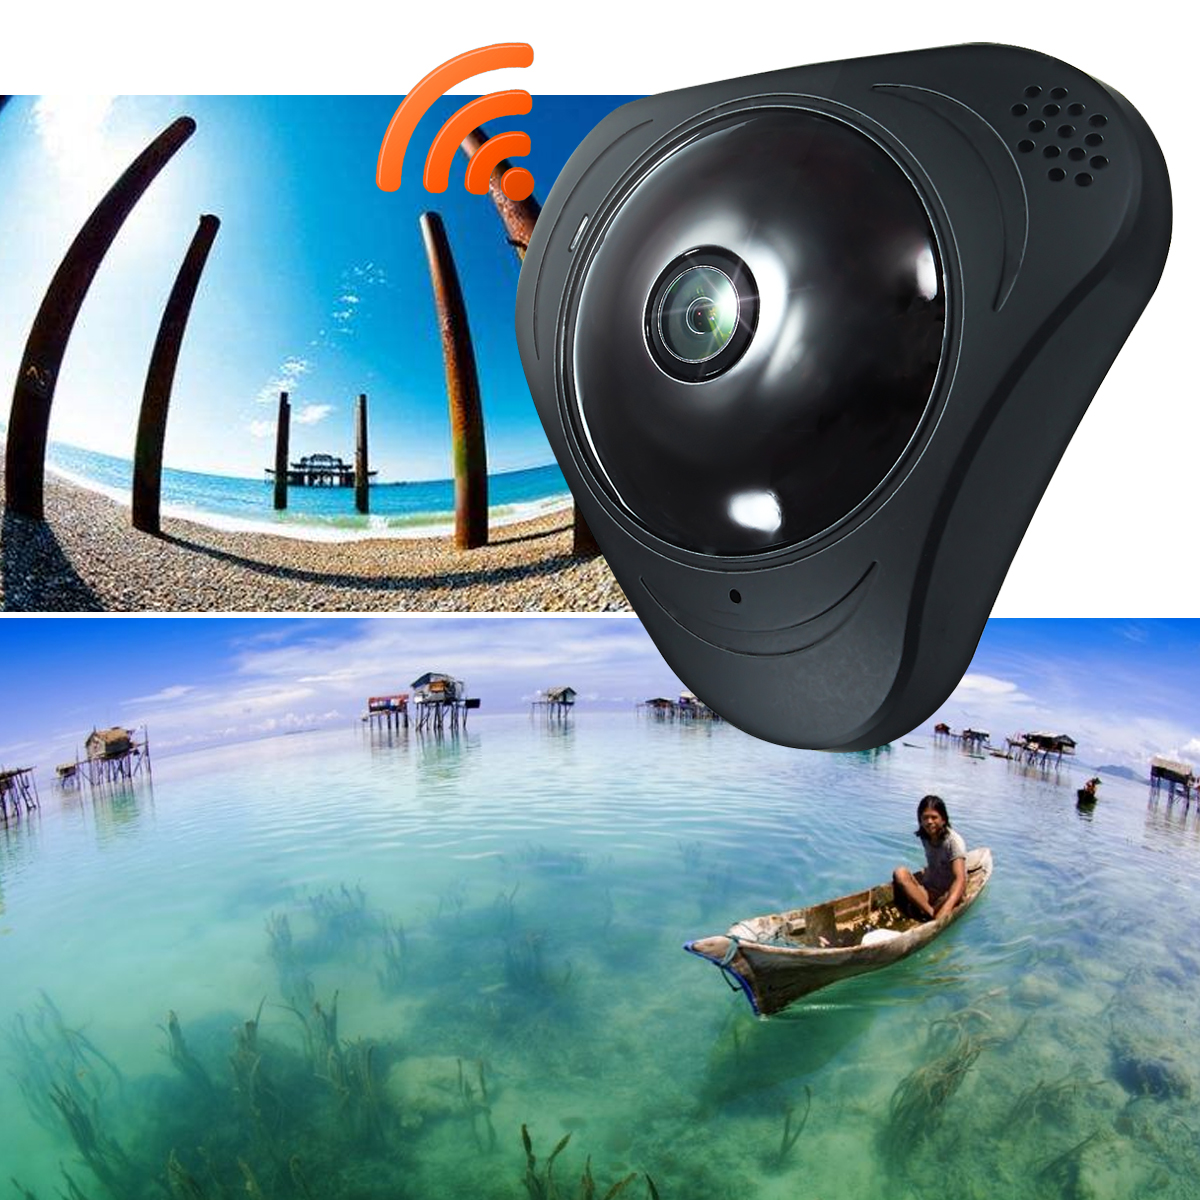 3D VR WIFI Camera 360 Degree Panoramic FIsheye 960P WIreless Indoor Security